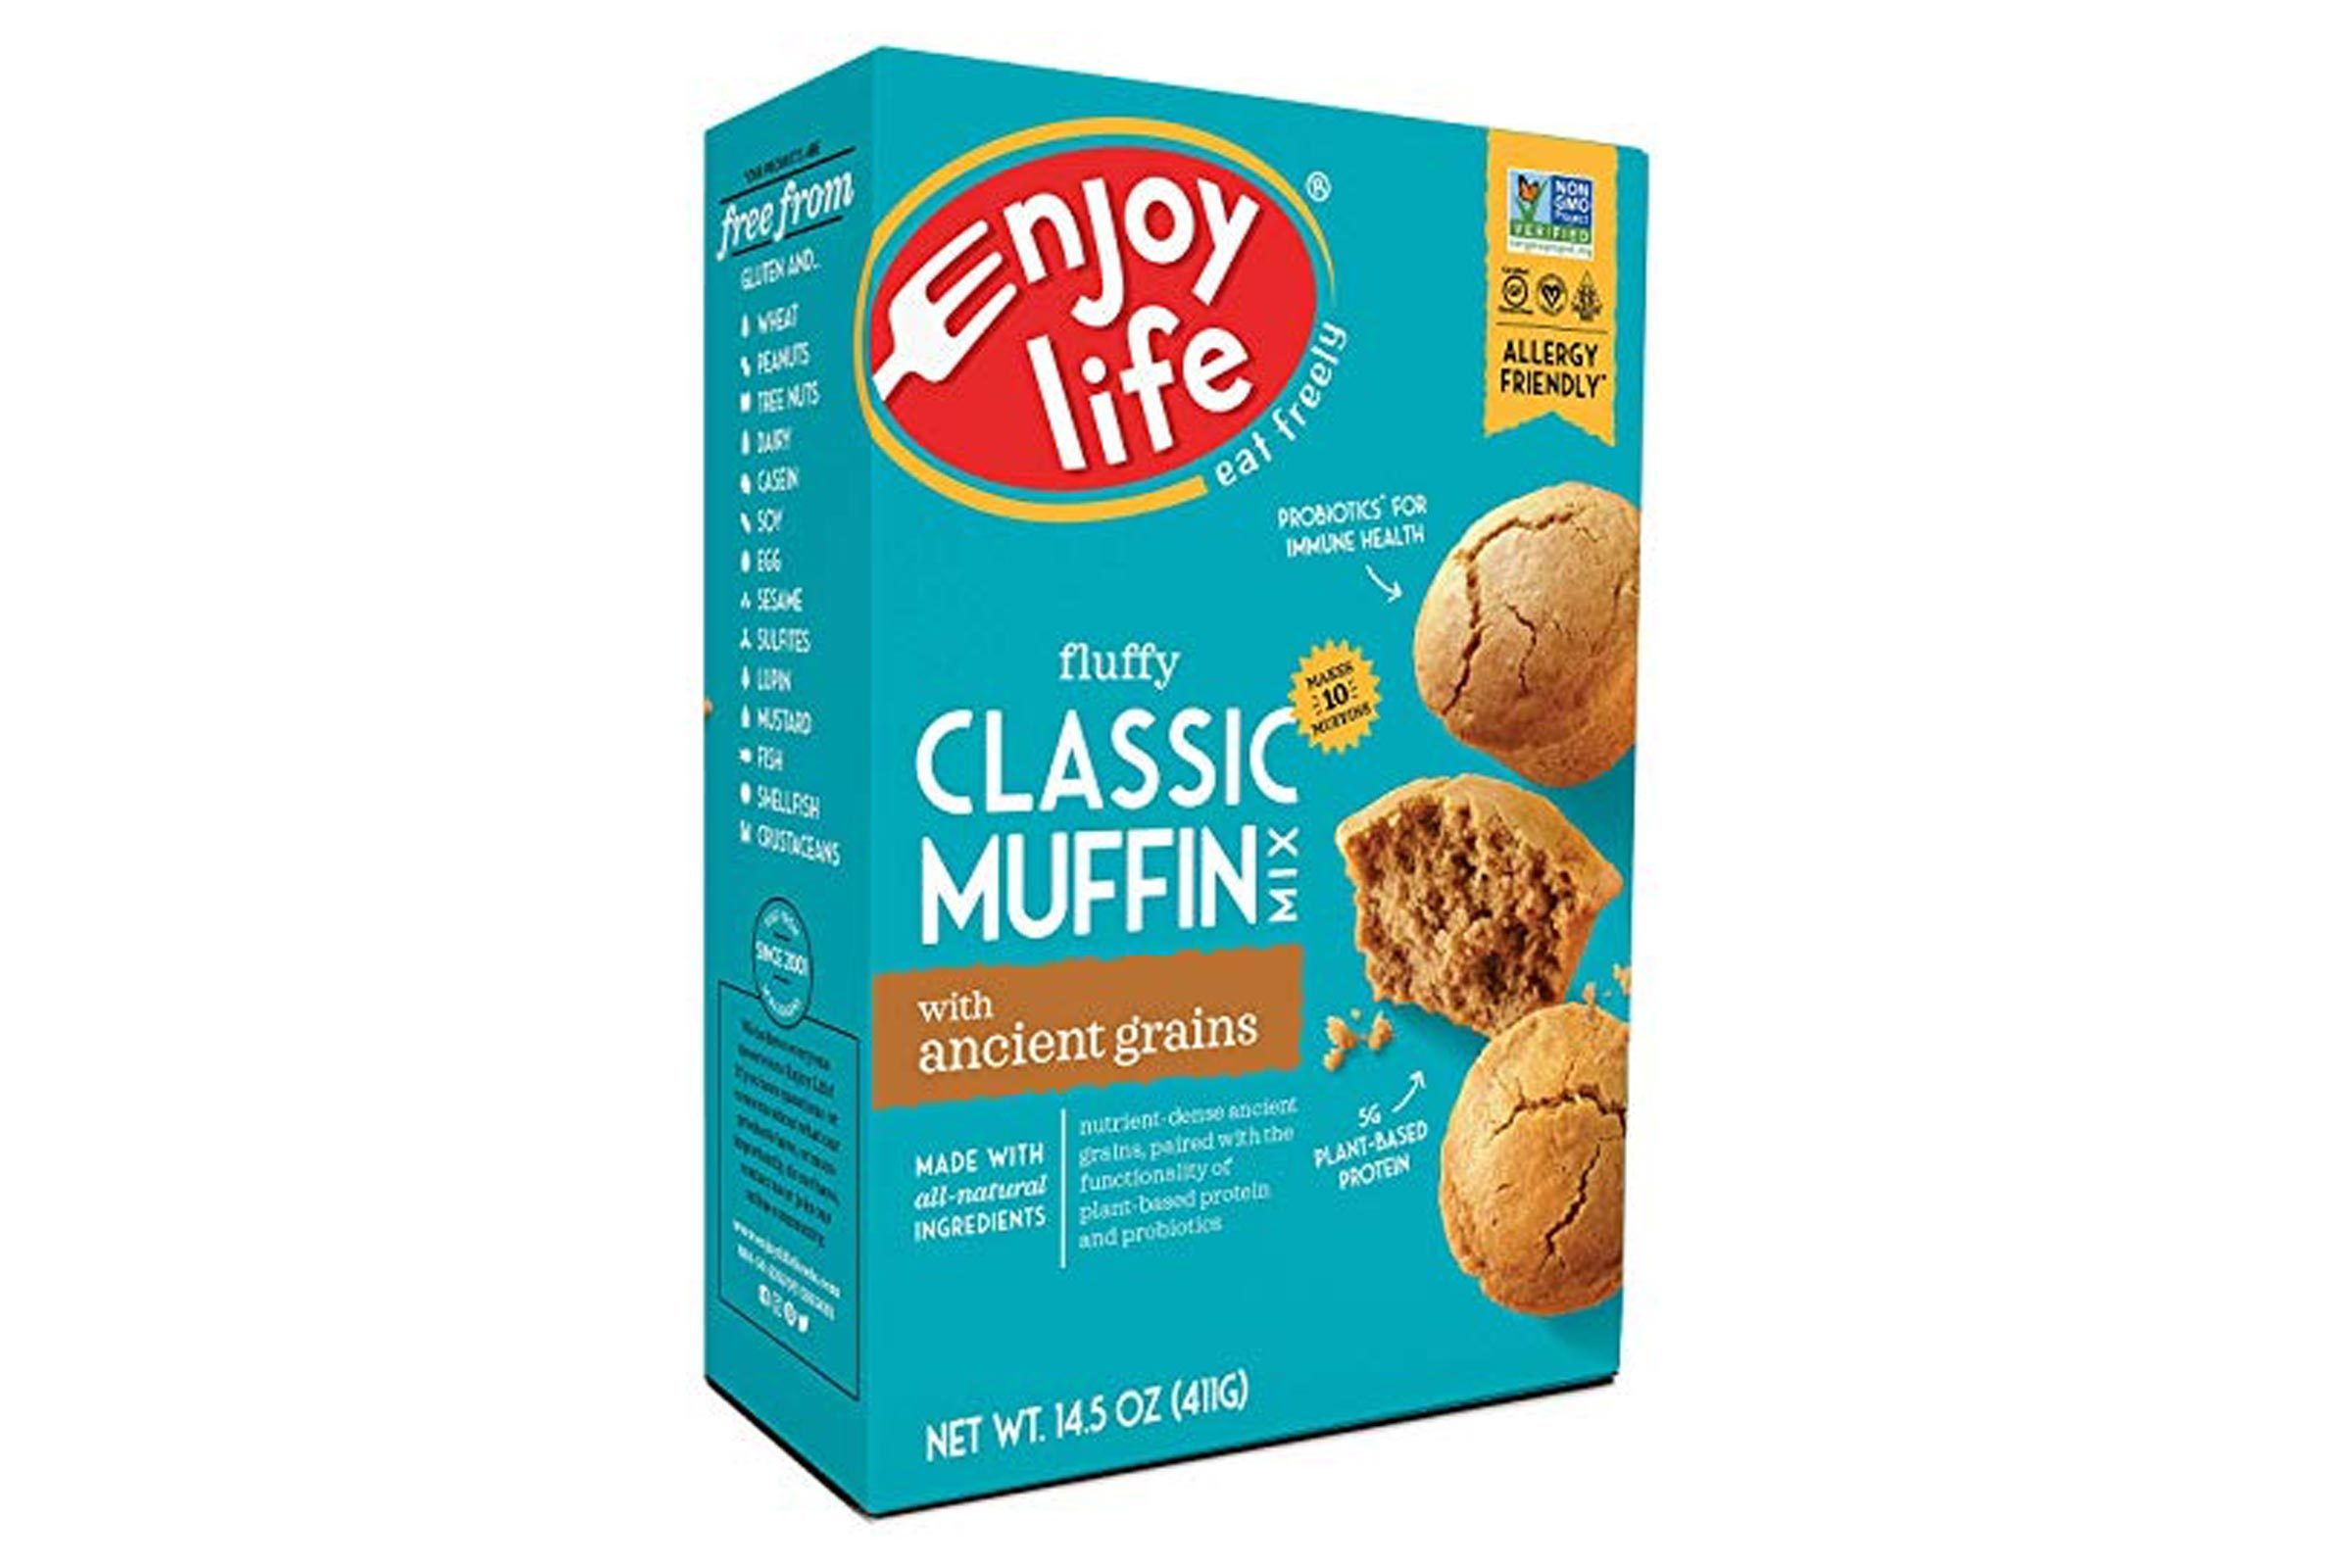 Enjoy Life Baking Mixes, Soy free, Nut free, Gluten free, Dairy free, Non GMO, Vegan, Muffin Mix, 14.5 Ounce Box